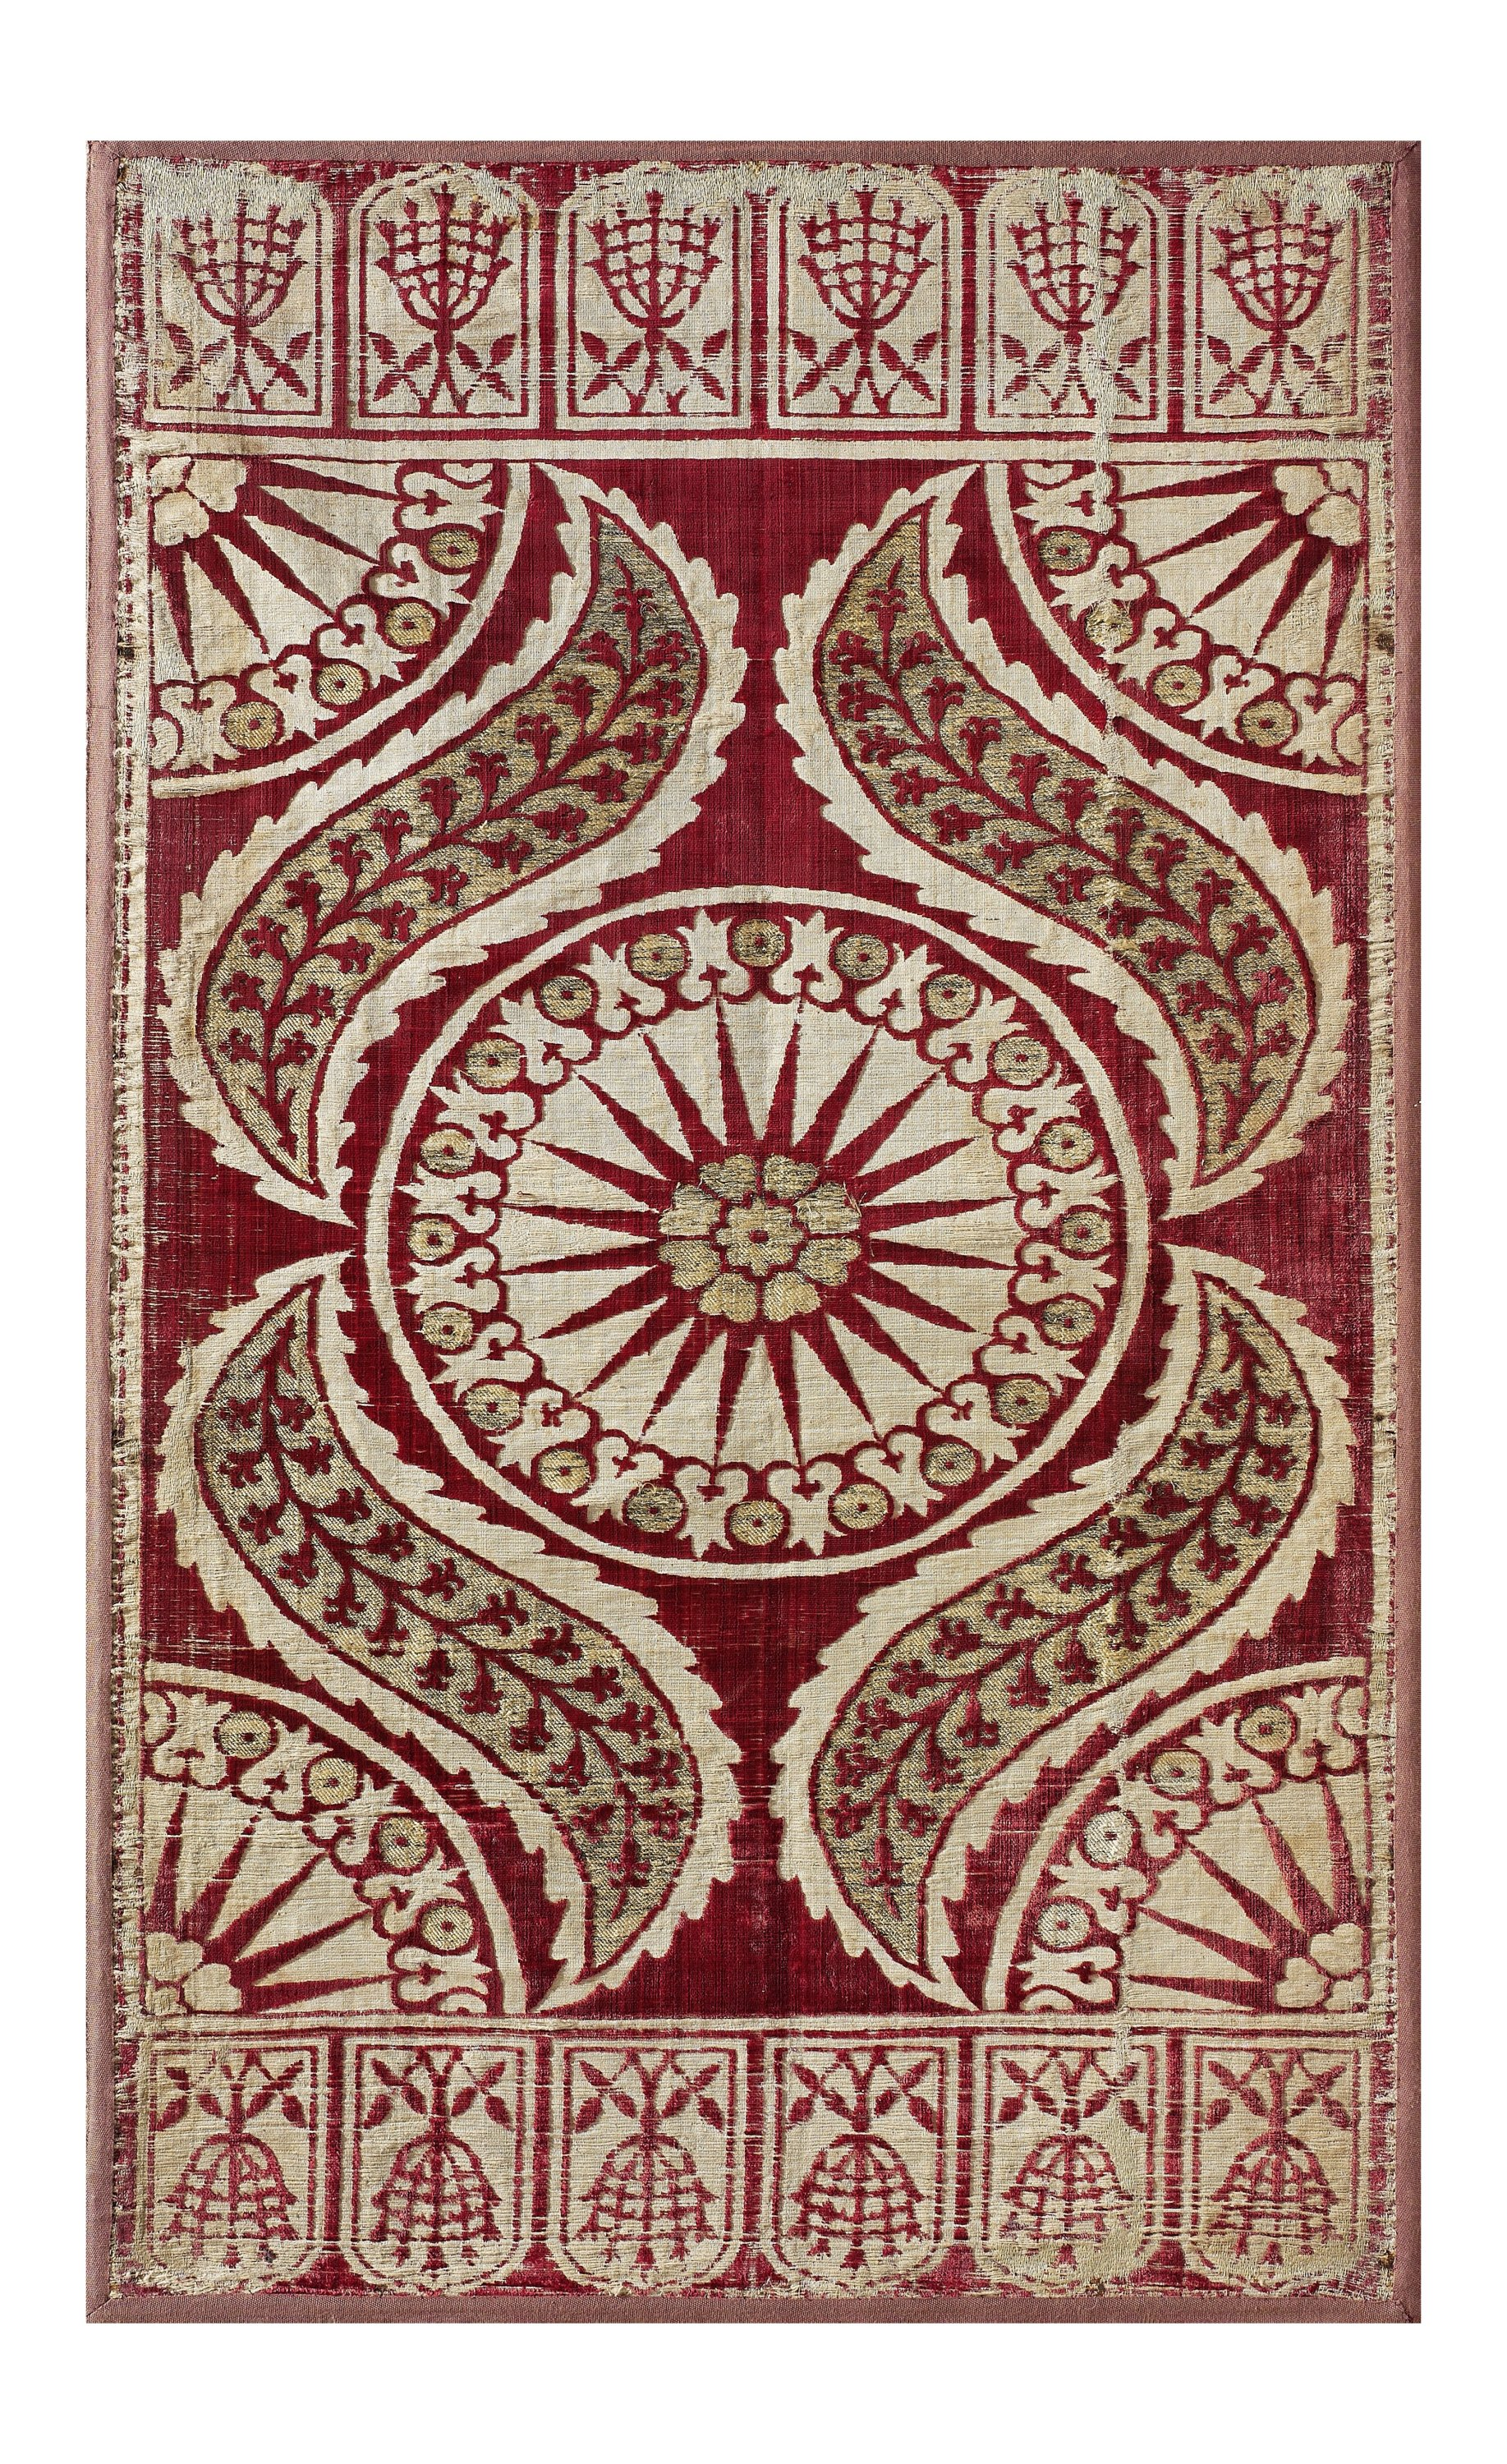 A velvet cushion cover from the 17th-century Ottoman period.